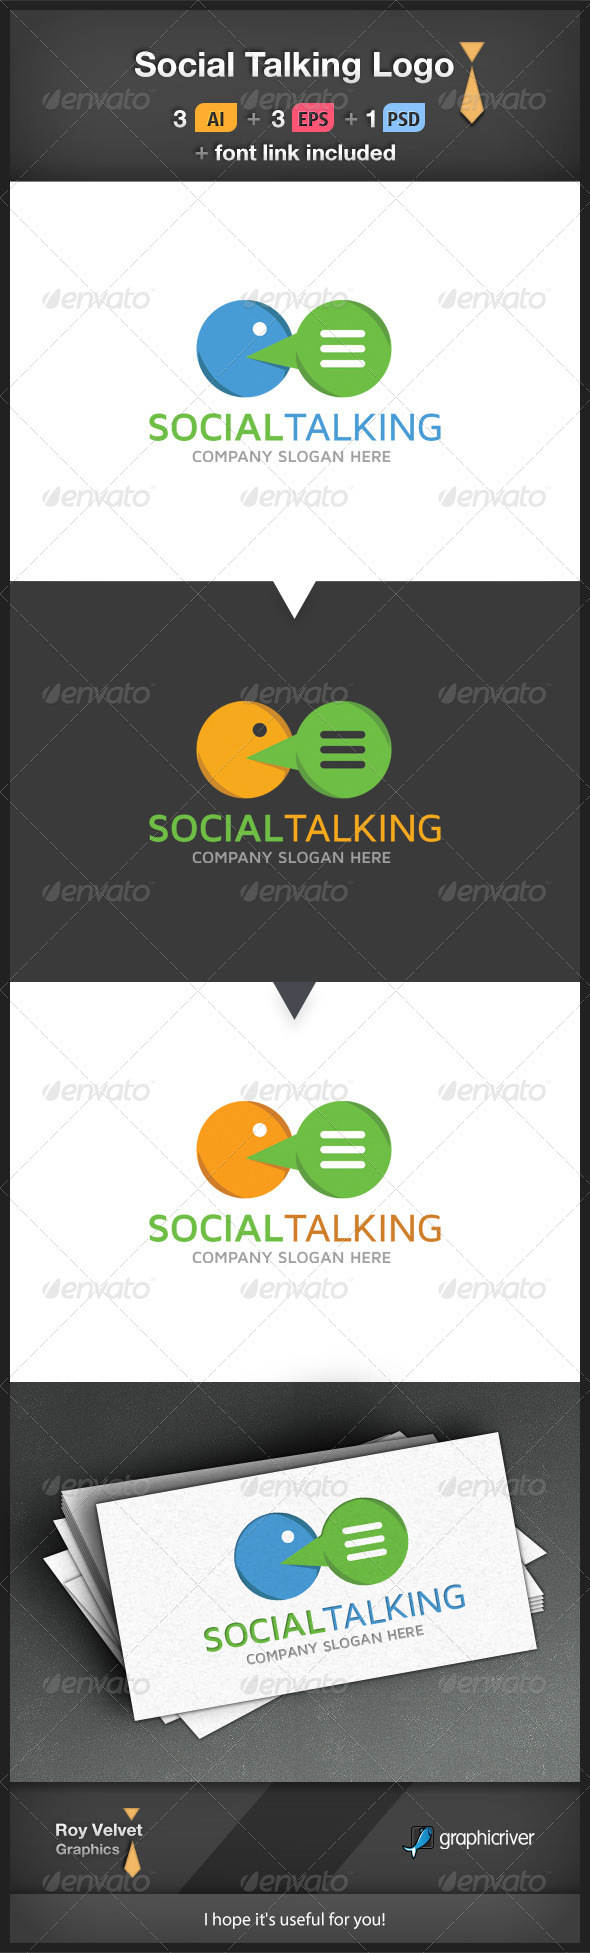 GraphicRiver Social Talking Logo 6250520